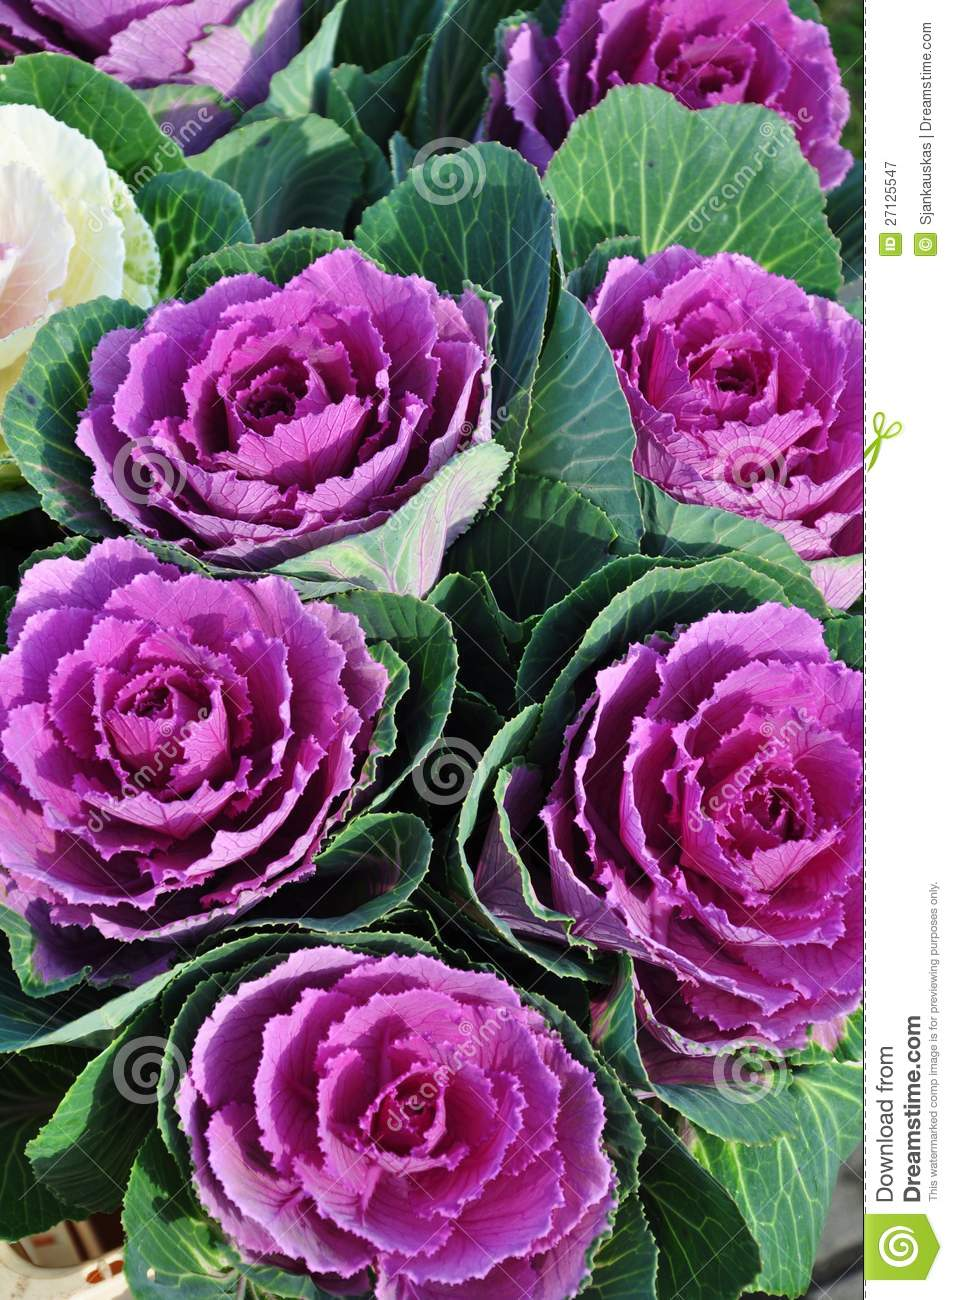 Cabbage Flowers Royalty Free Stock Photography.